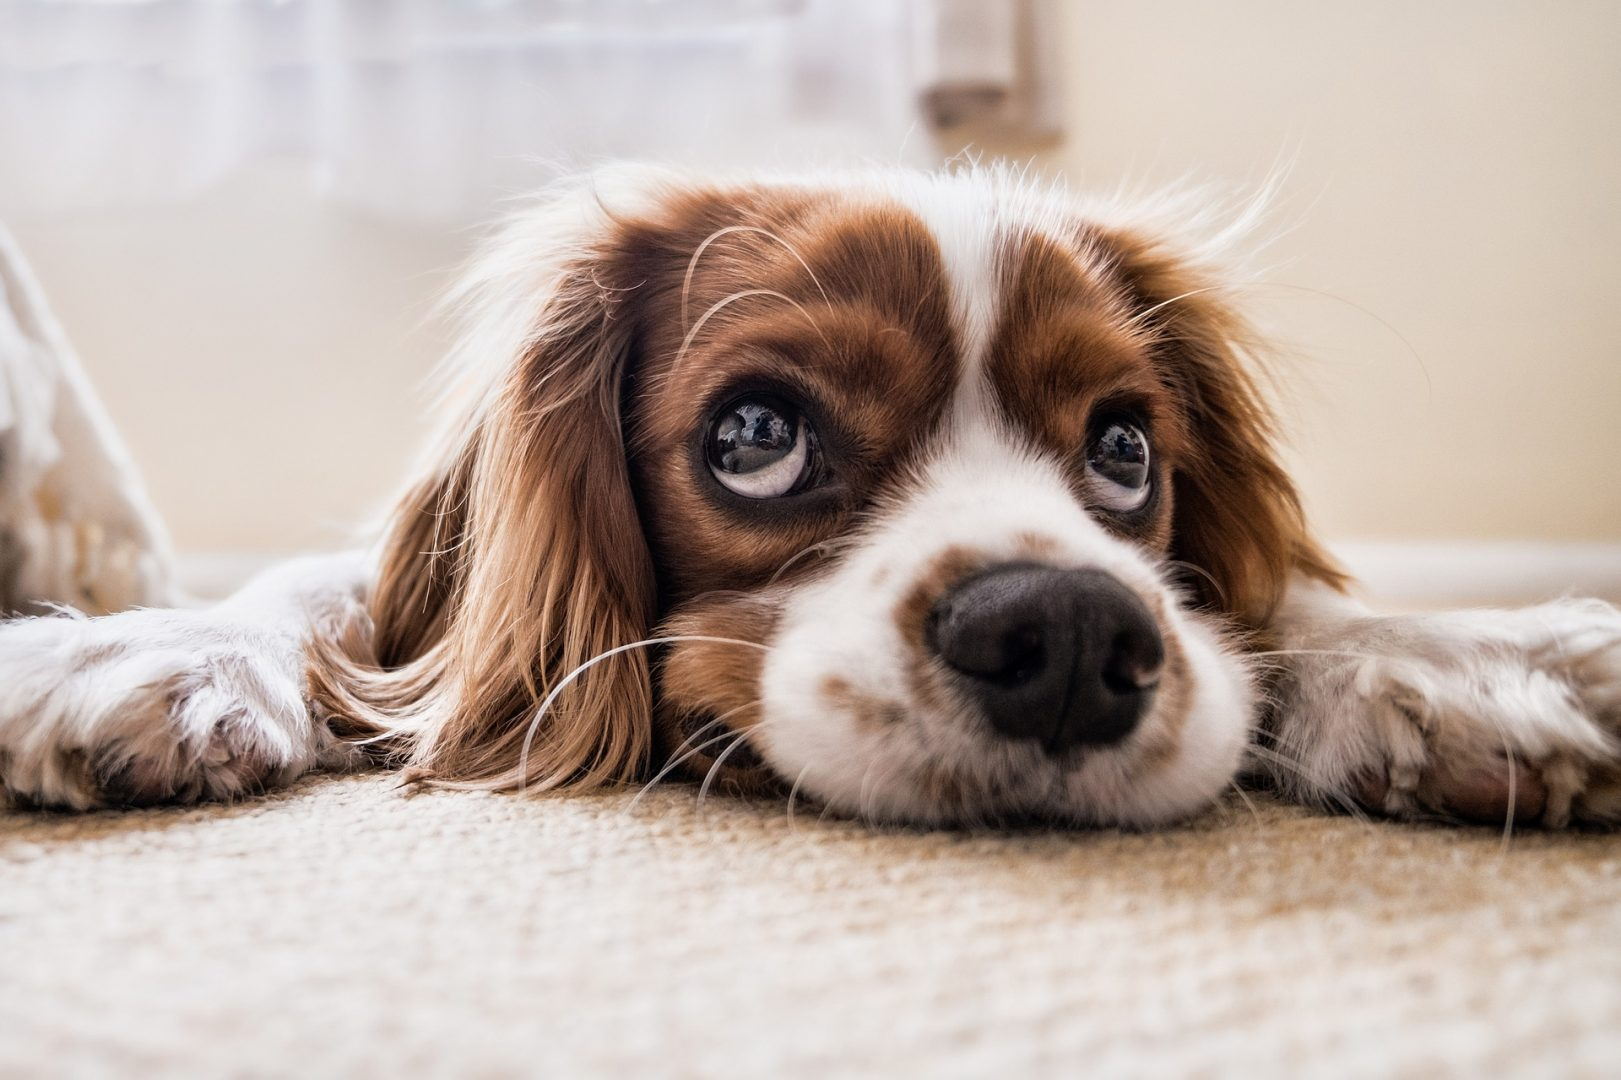 Can Dogs Suffer From Separation Anxiety